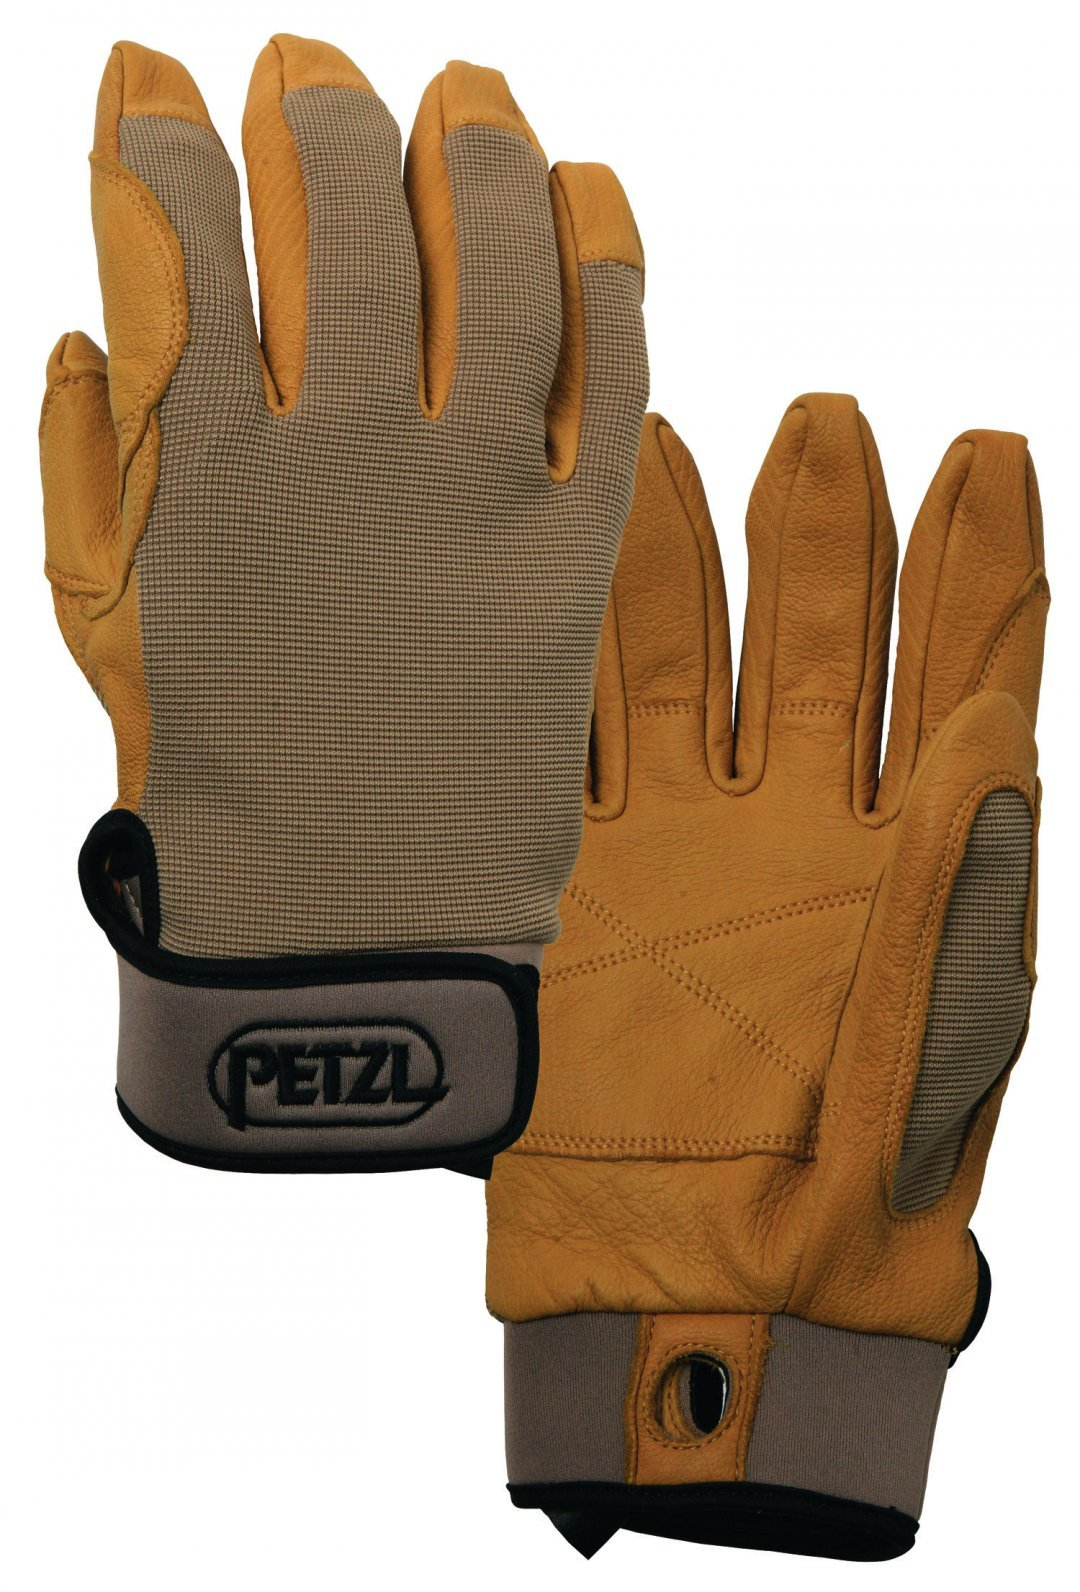 Petzl Lightweight belay/Rappel gloves